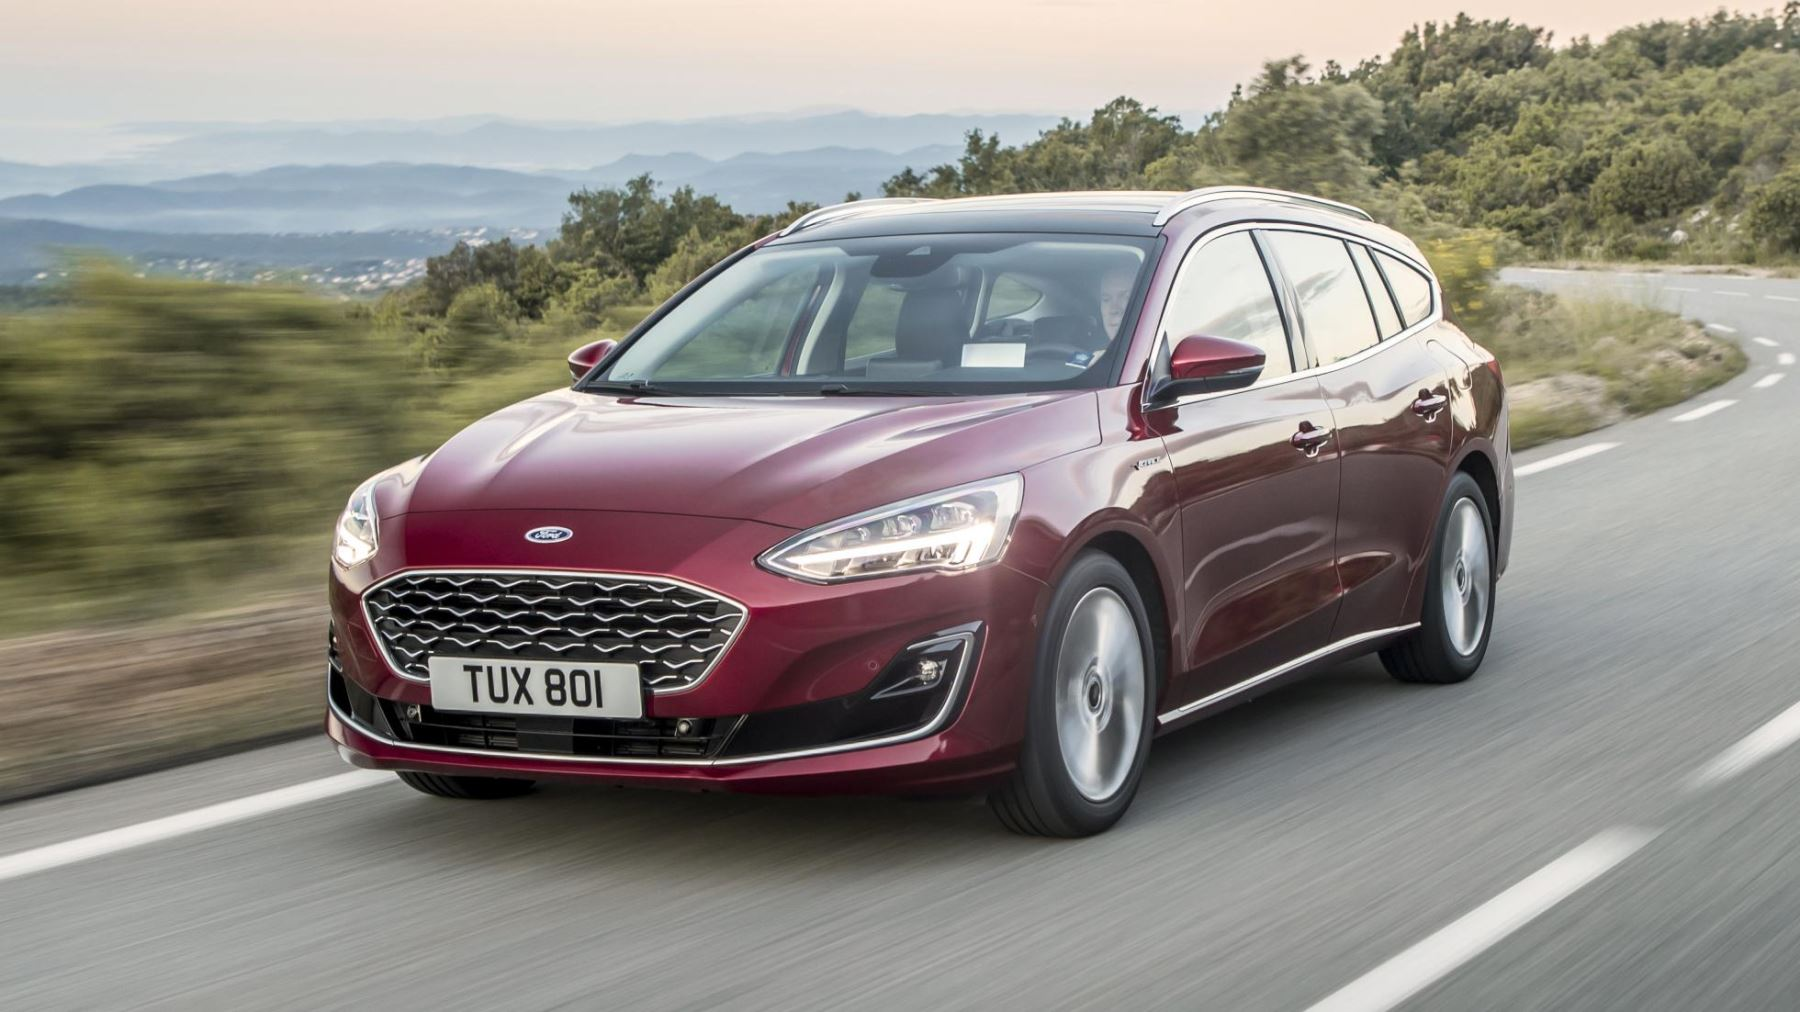 Ford Focus Active 1.0 Petrol 125ps 5 door Estate (2019)